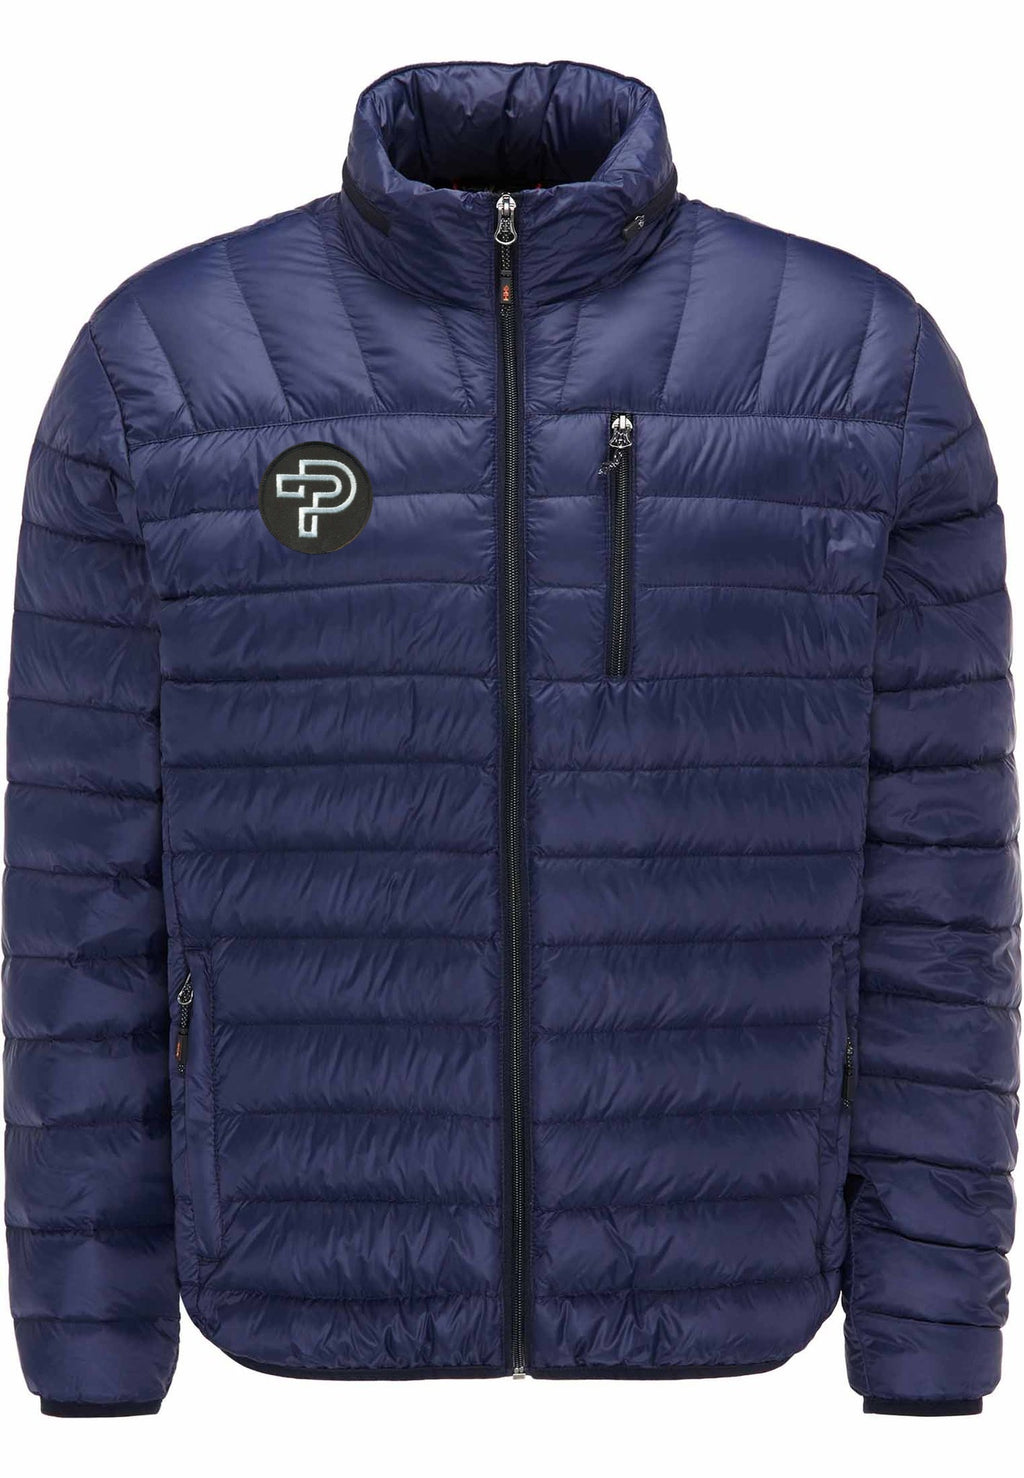 PT LIGHTWEIGHT DOWN JACKET WIND AND WATER-REPELLENT MEN